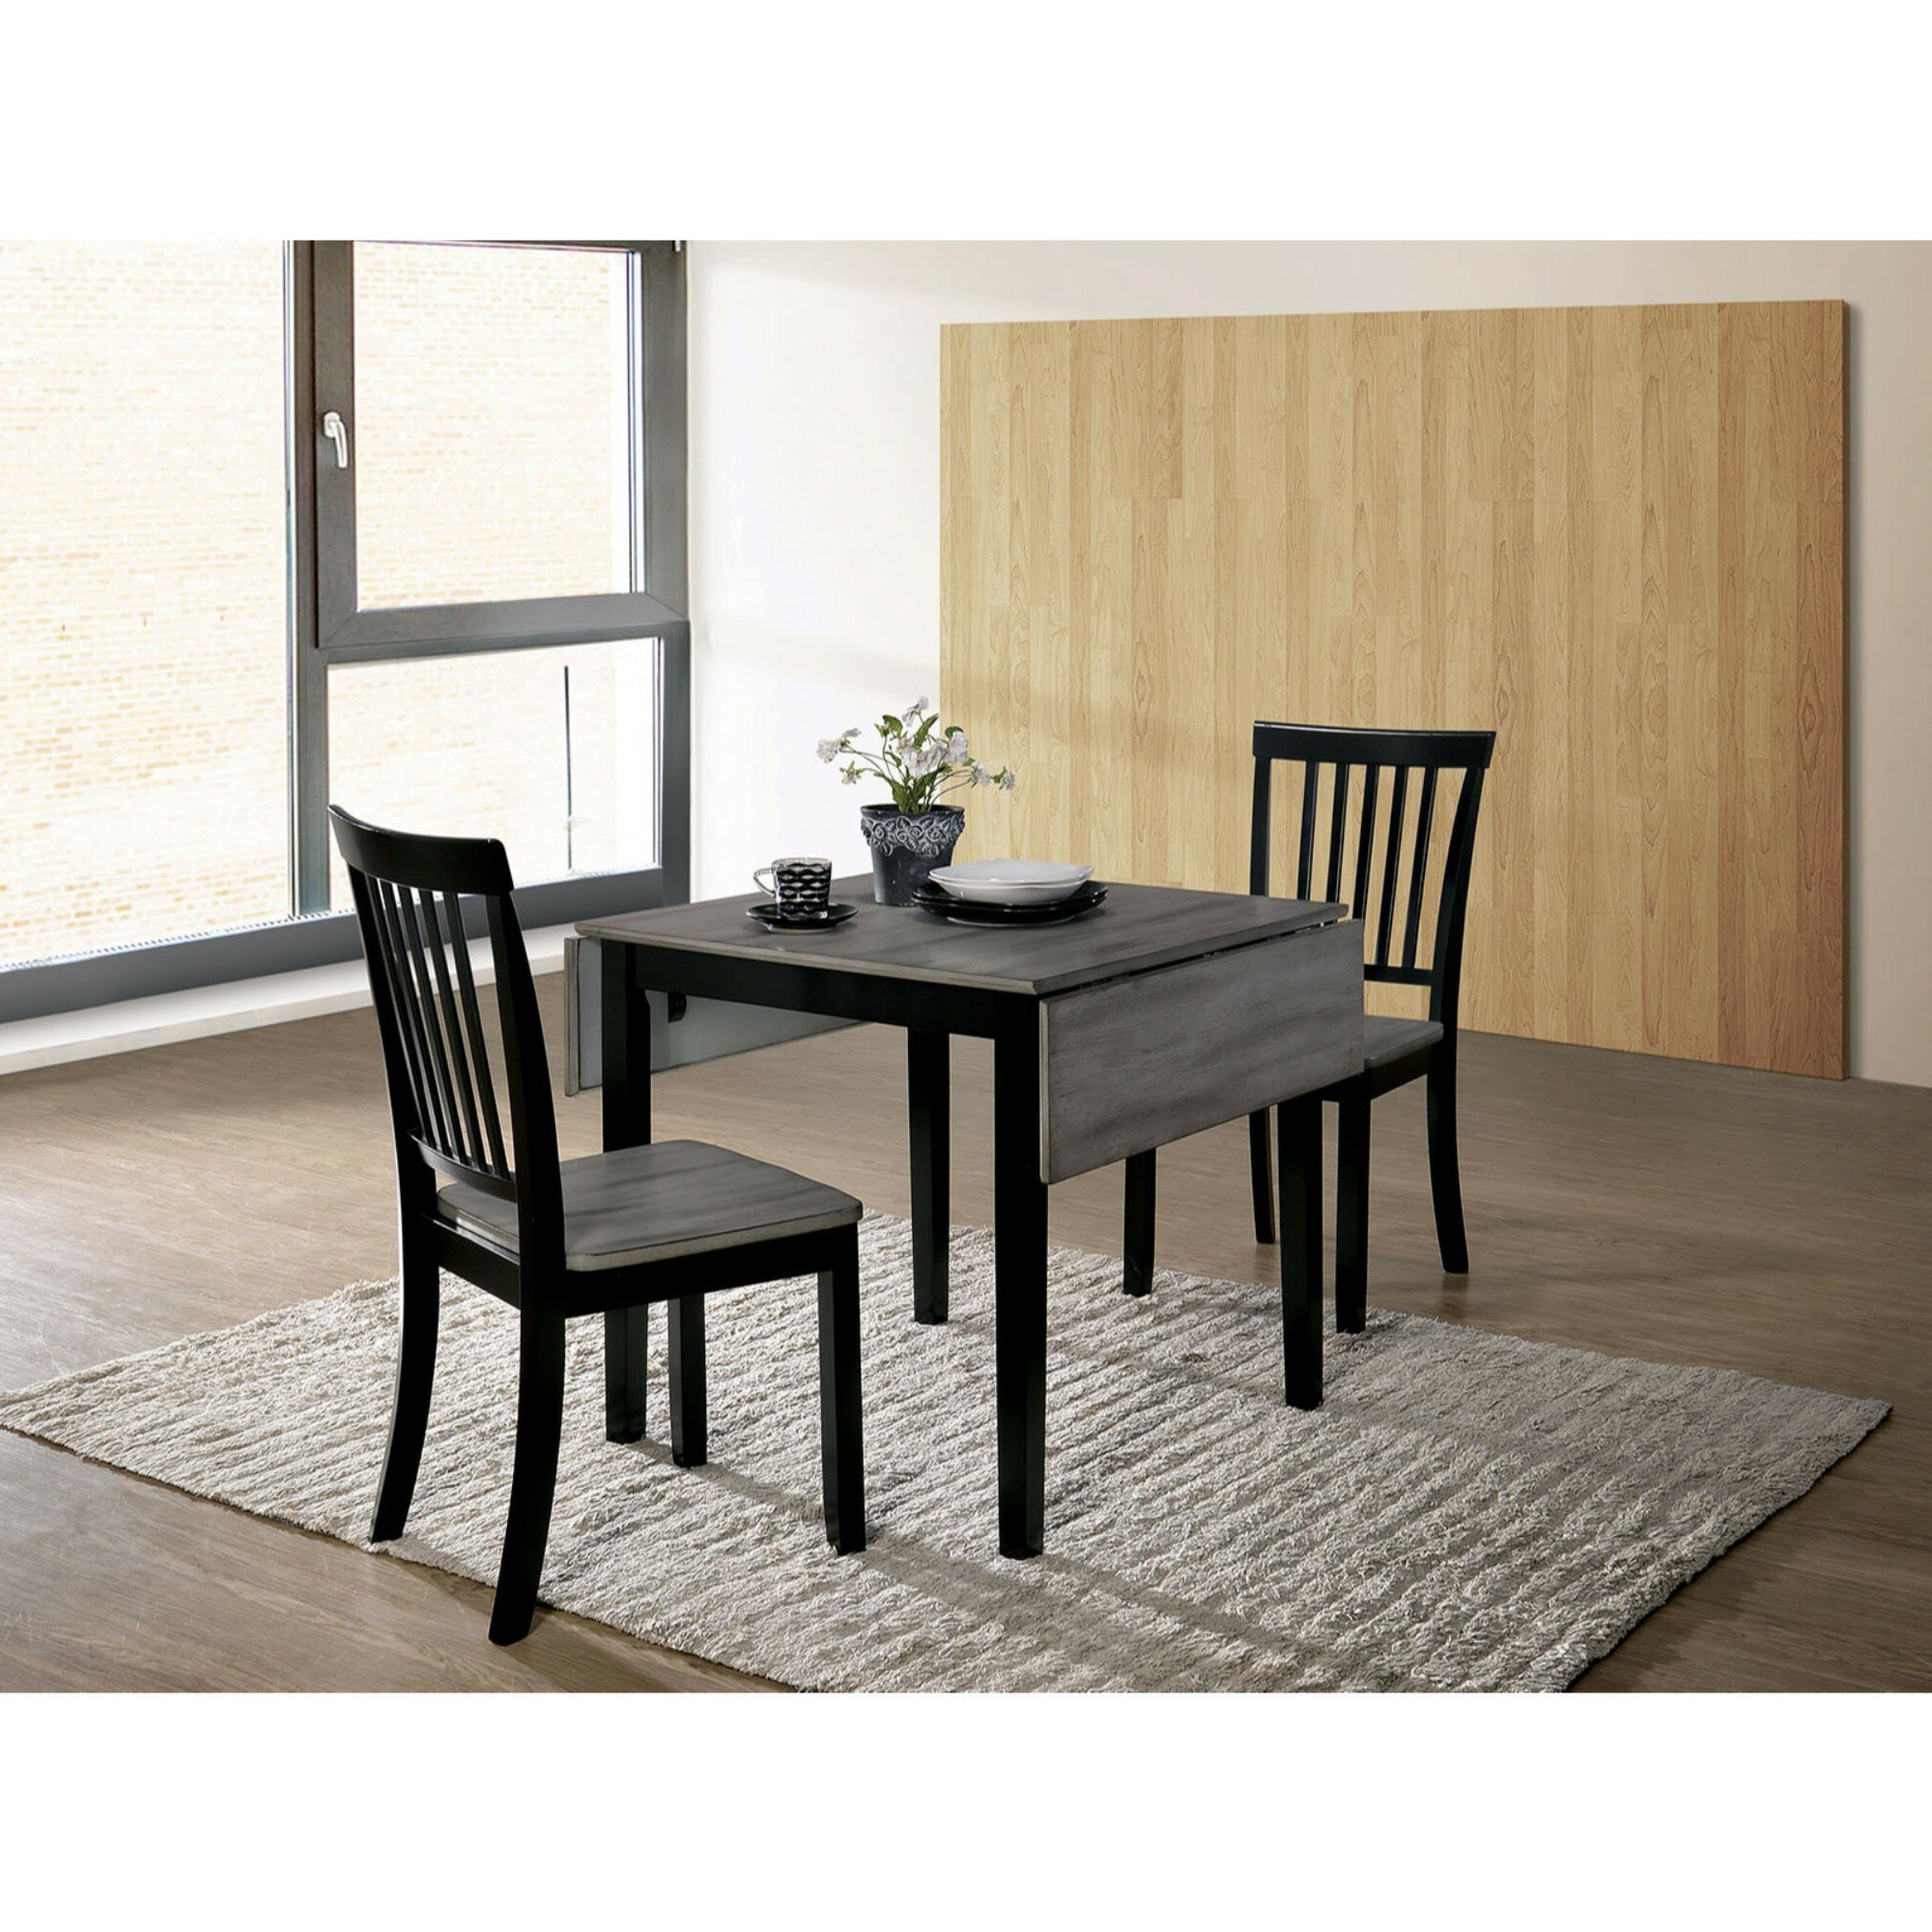 Maone Transitional 3 Piece Drop Leaf Solid Wood Dining Set Inside Recent Transitional 3 Piece Drop Leaf Casual Dining Tables Set (View 10 of 25)